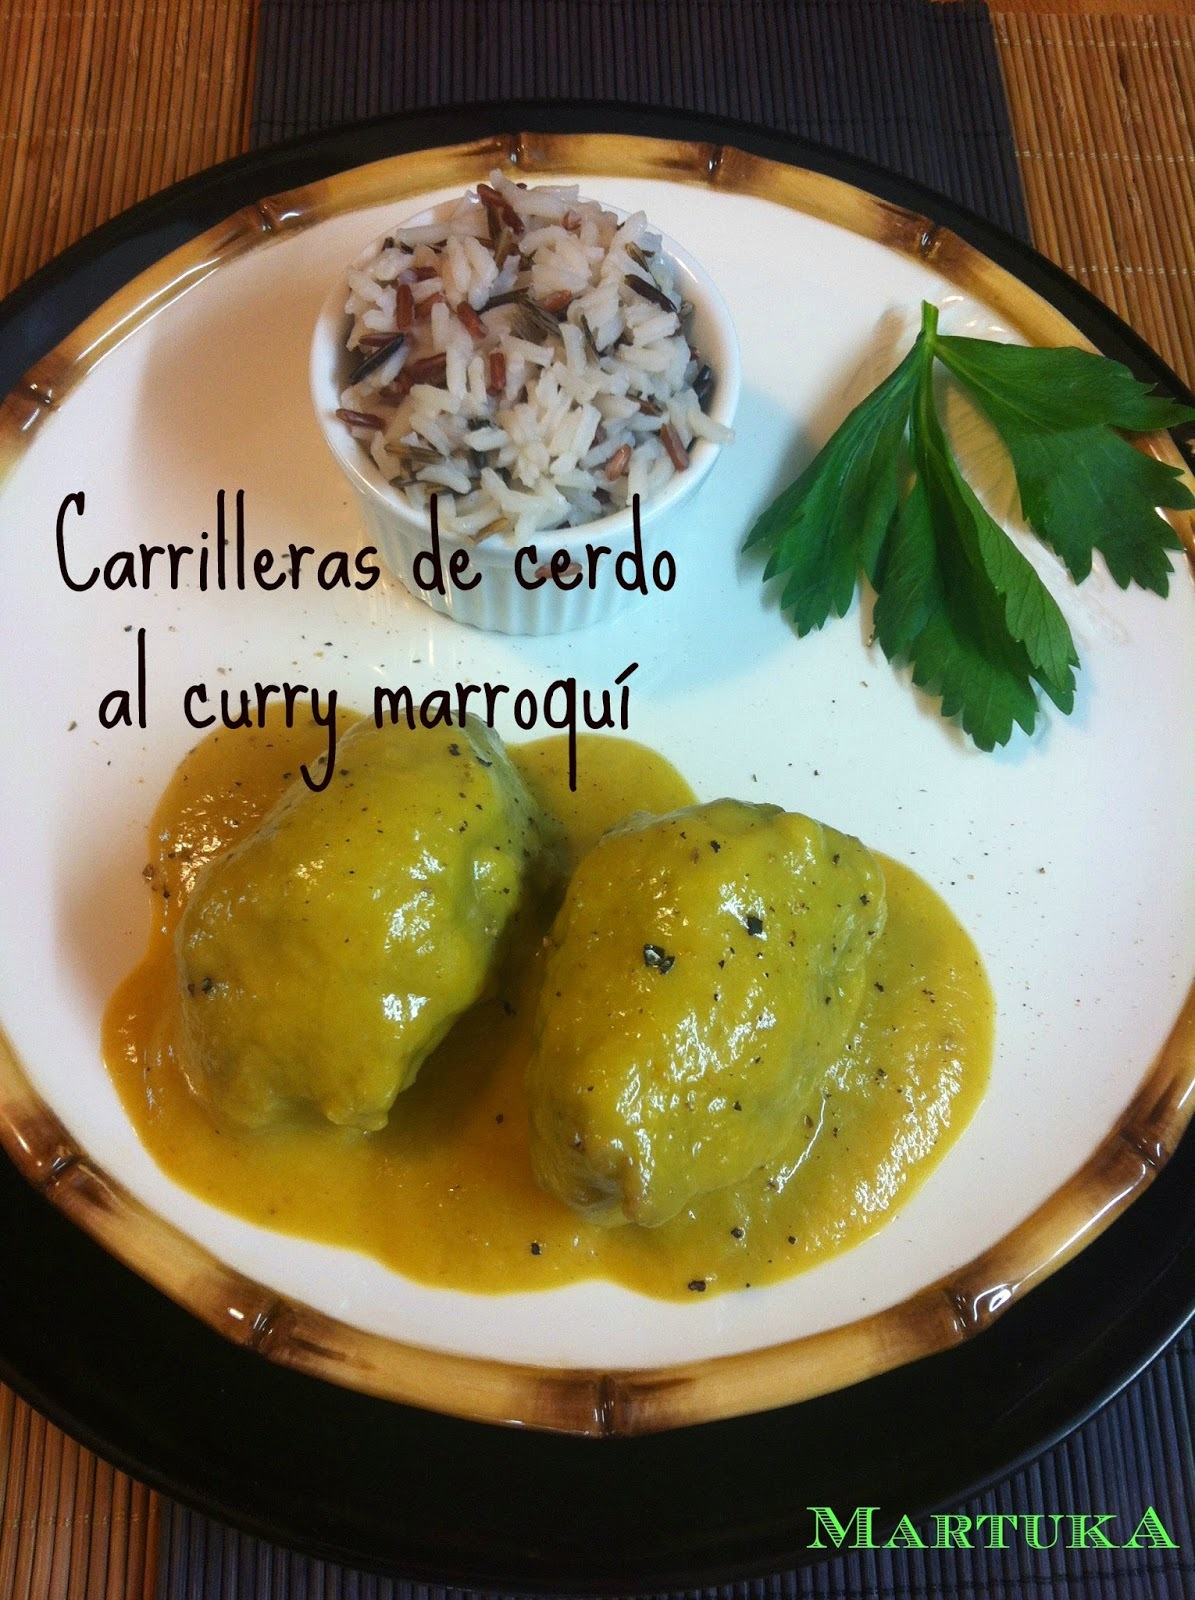 Carrilleras De Cerdo Al Curry Marroquí